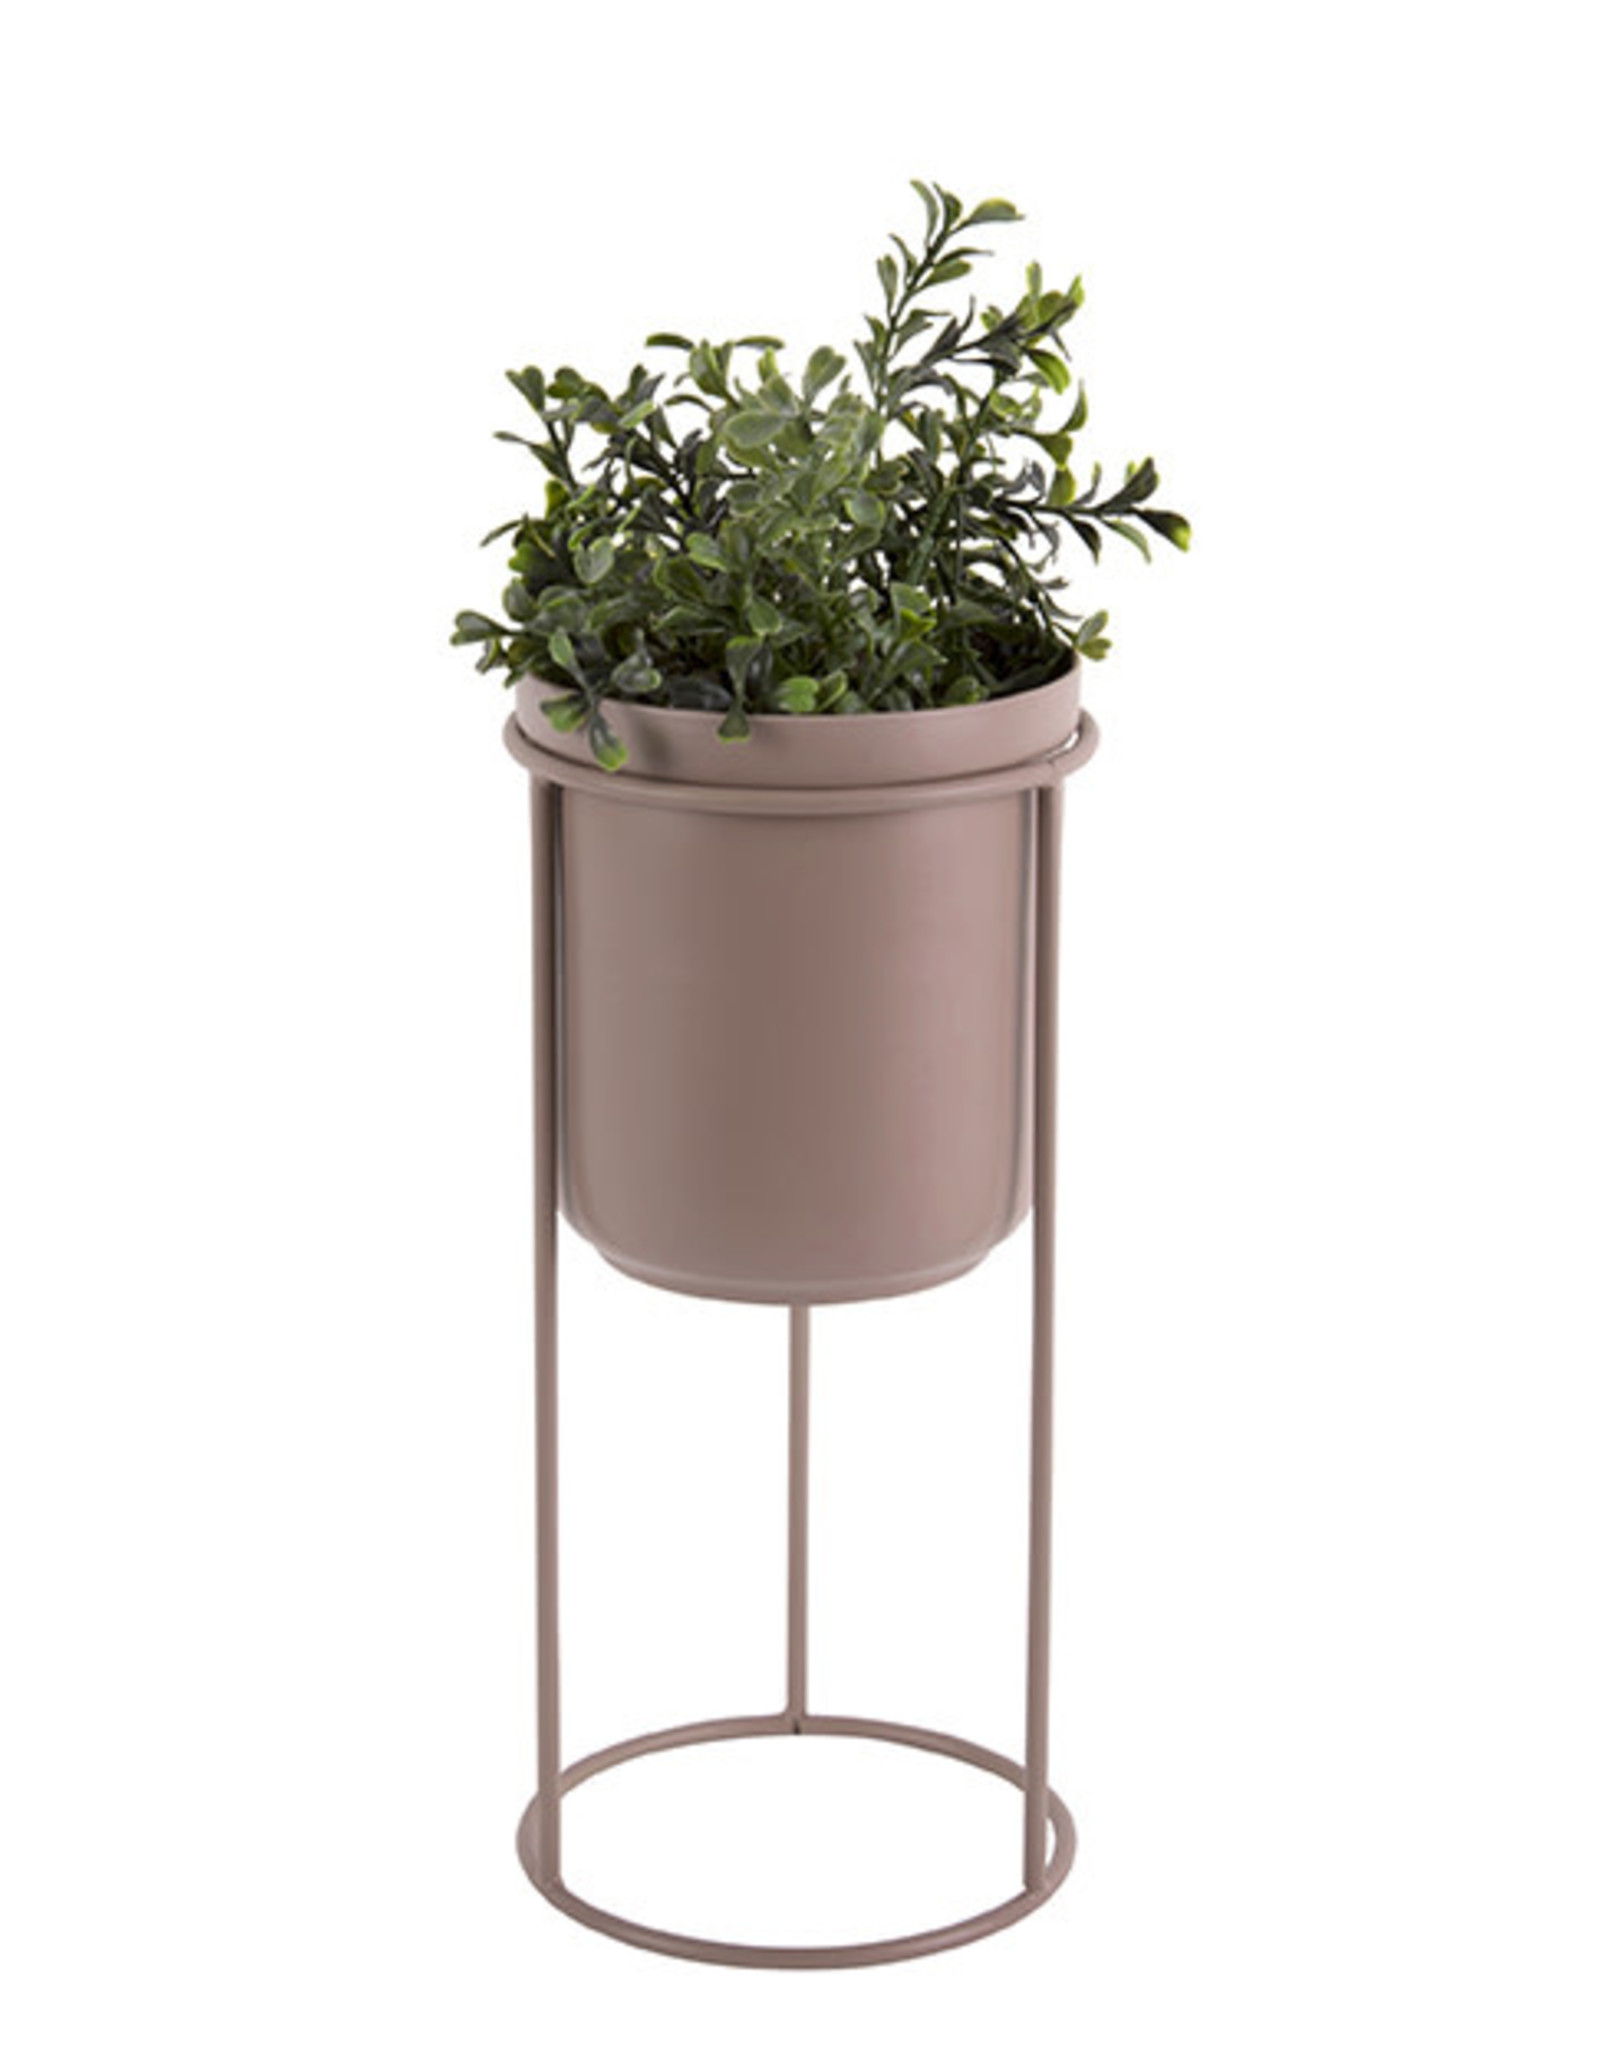 pt Tub on stand Ø17 h19 cm (total h32 cm) - Faded pink